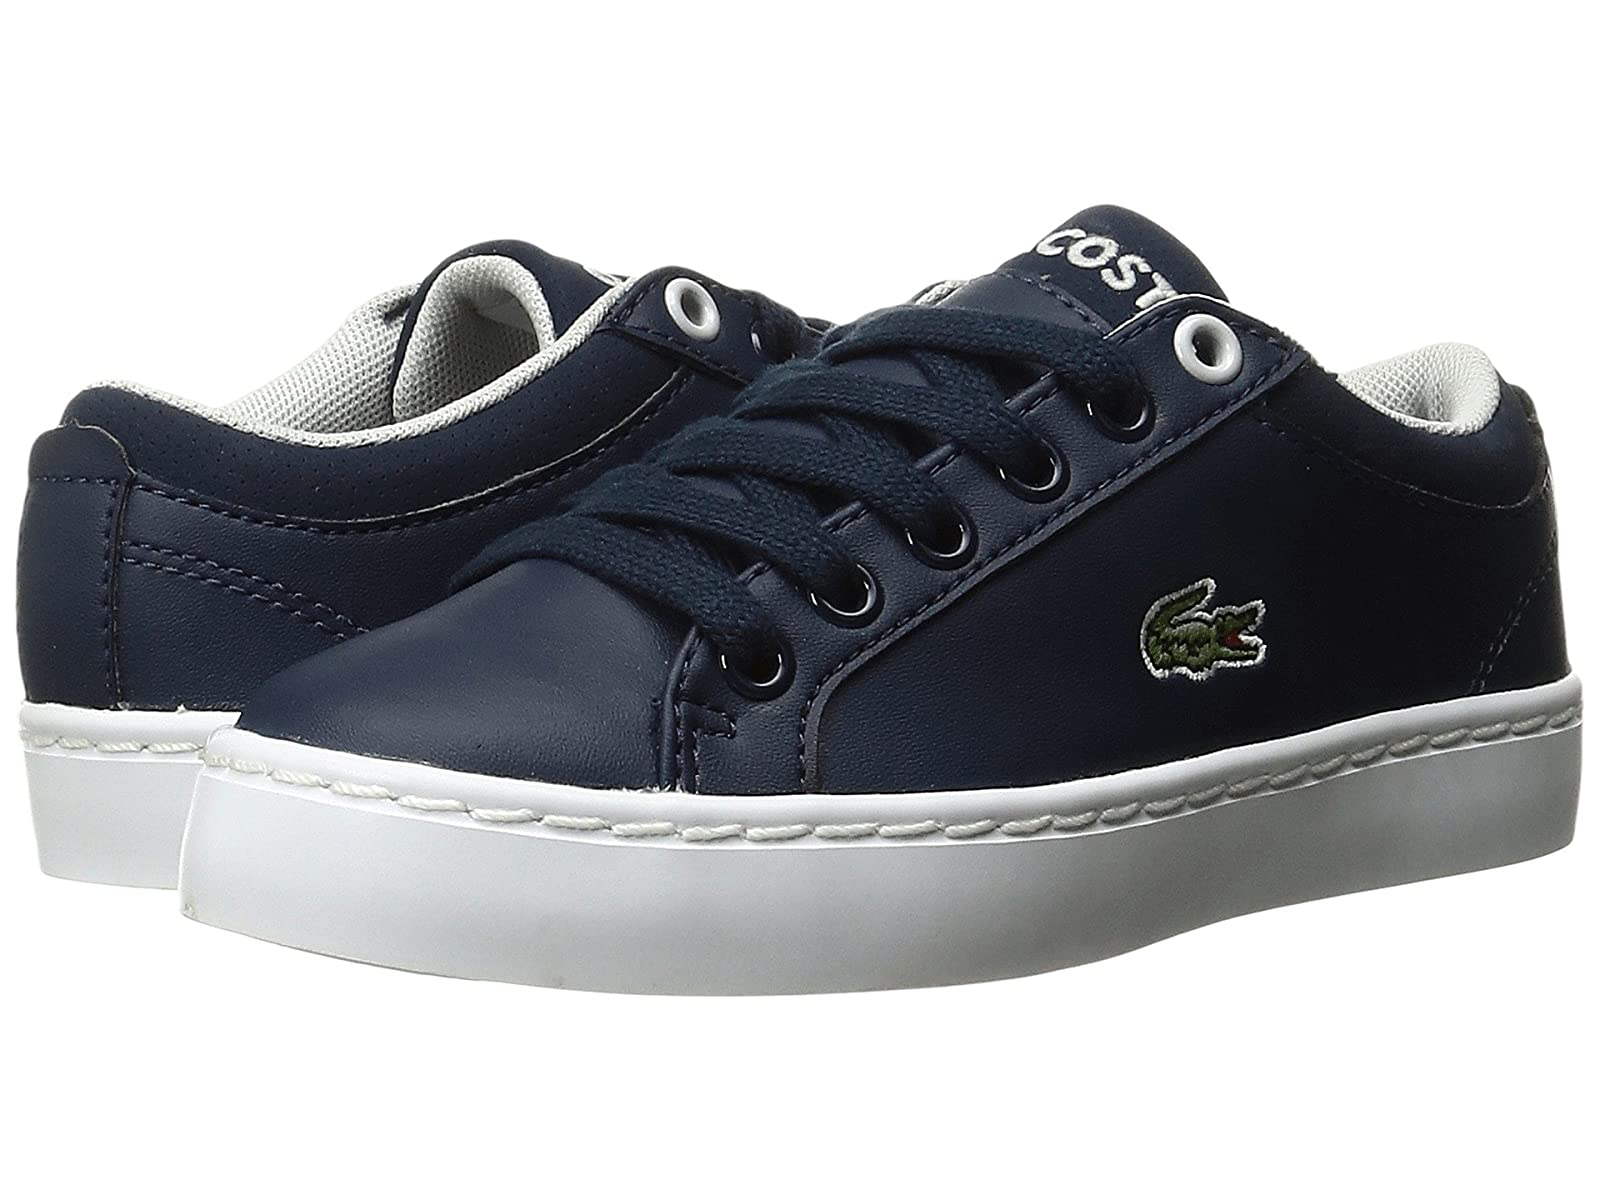 Lacoste Kids Straightset (Little Kid)Atmospheric grades have affordable shoes